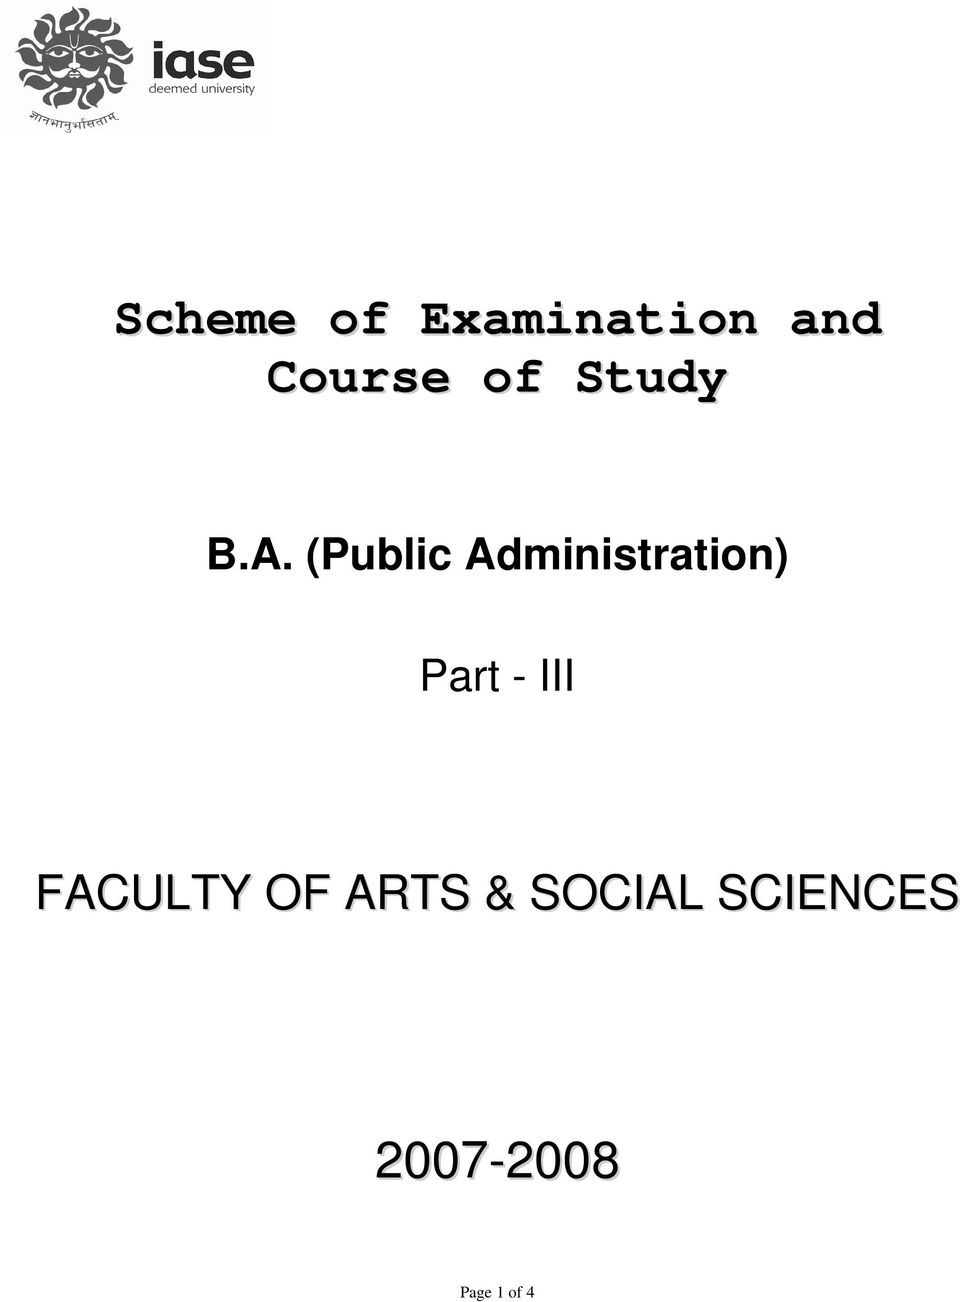 (Public Administration) Part - III